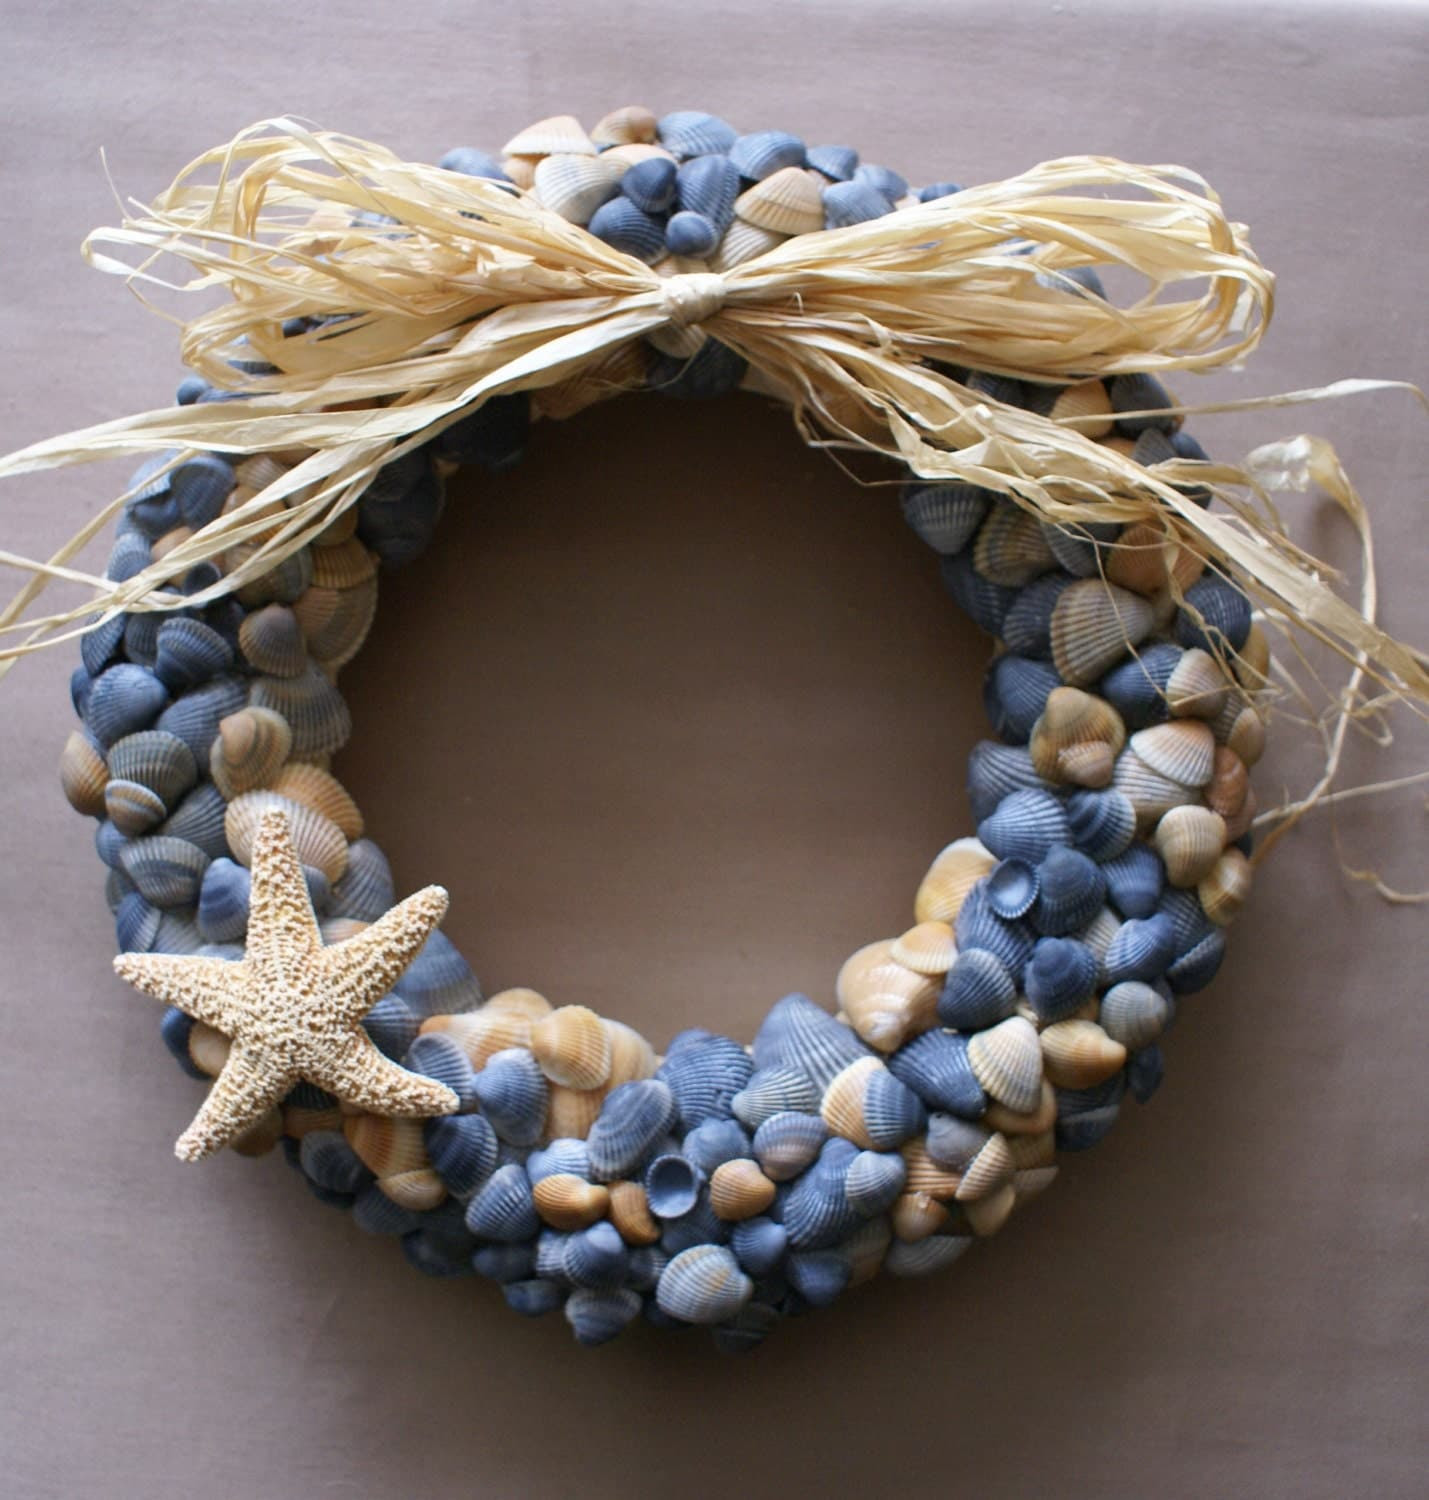 Seashell wreath 11 blue beach wreath coastal decor by JustShellin